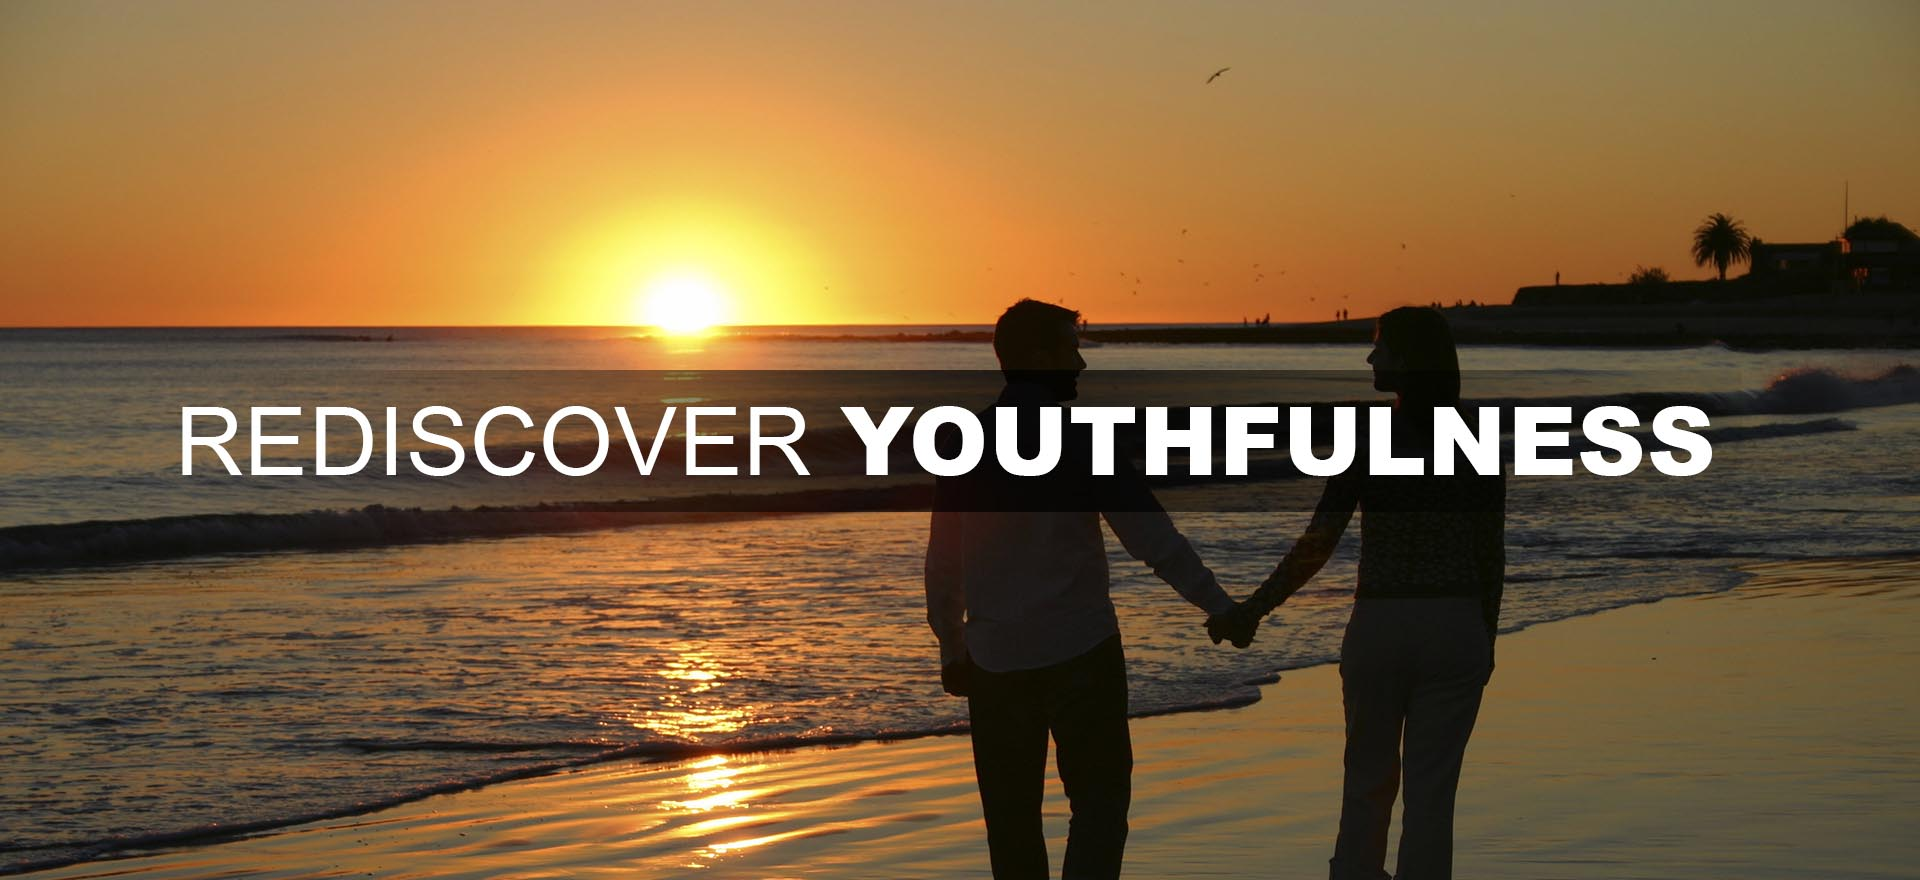 Echo H2 - Rediscover Youthfulness